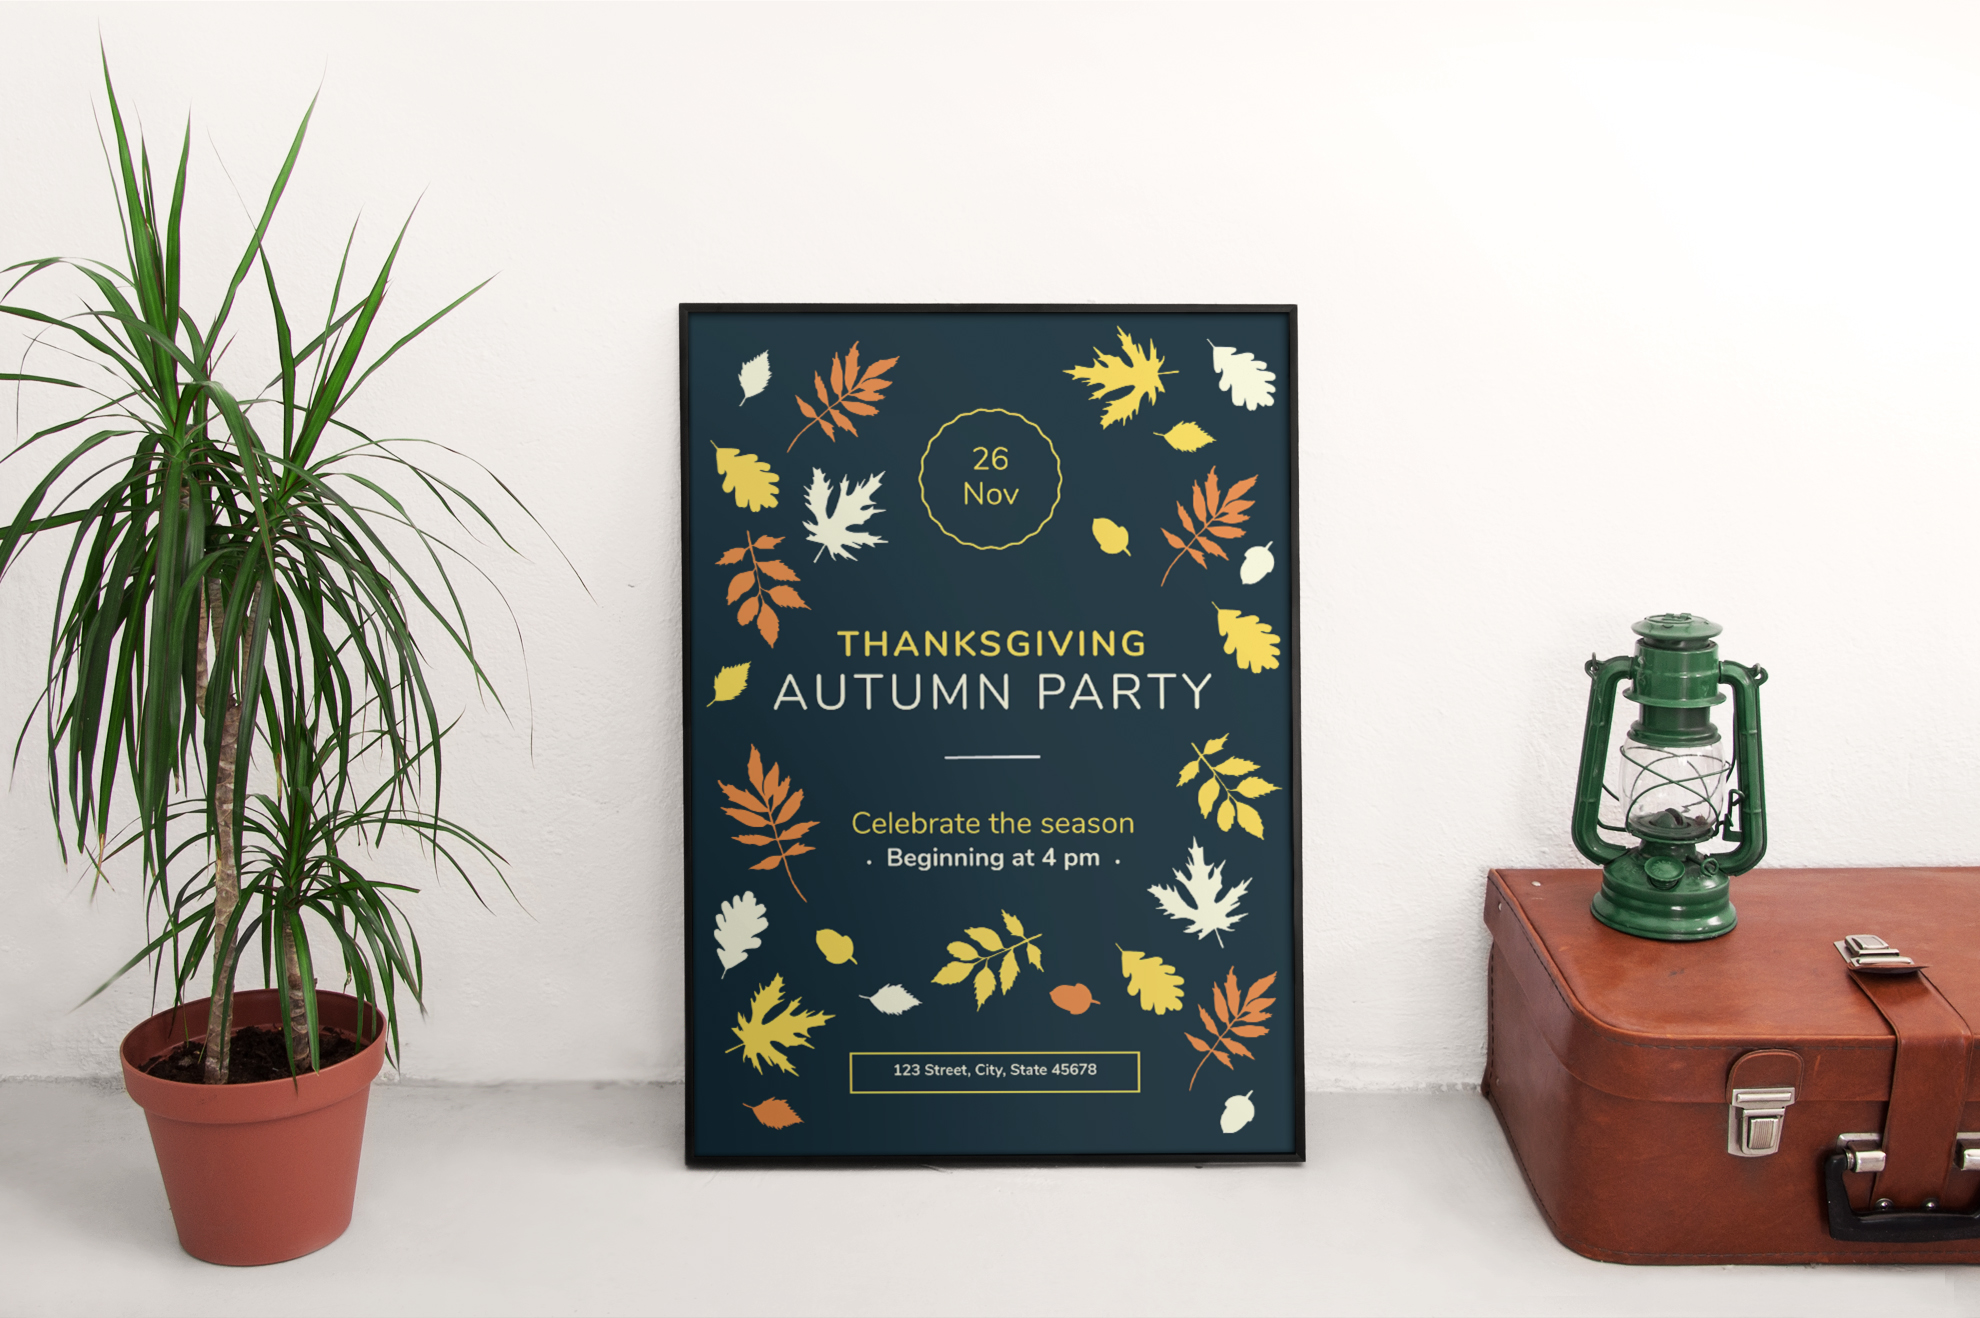 Thanksgiving Autumn Party Design Templates Bundle example image 4